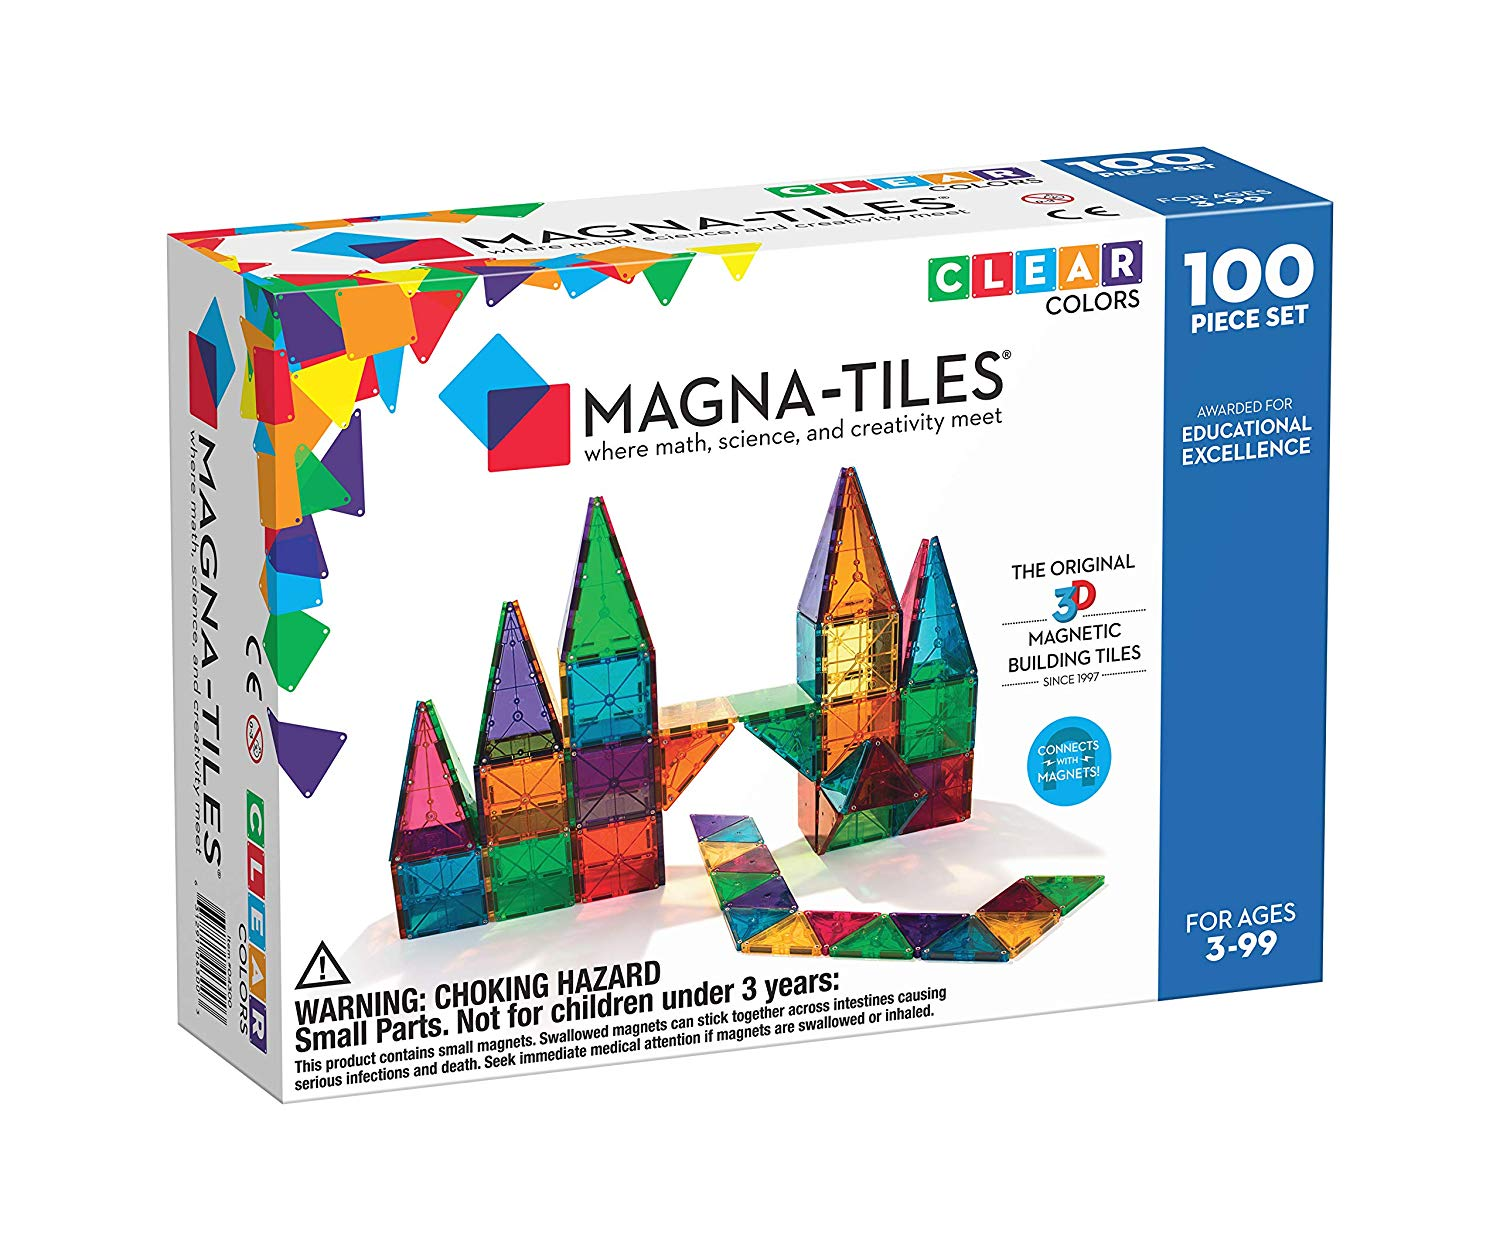 Magna-Tiles Clear Colors 100 Piece Set- best gifts for kids